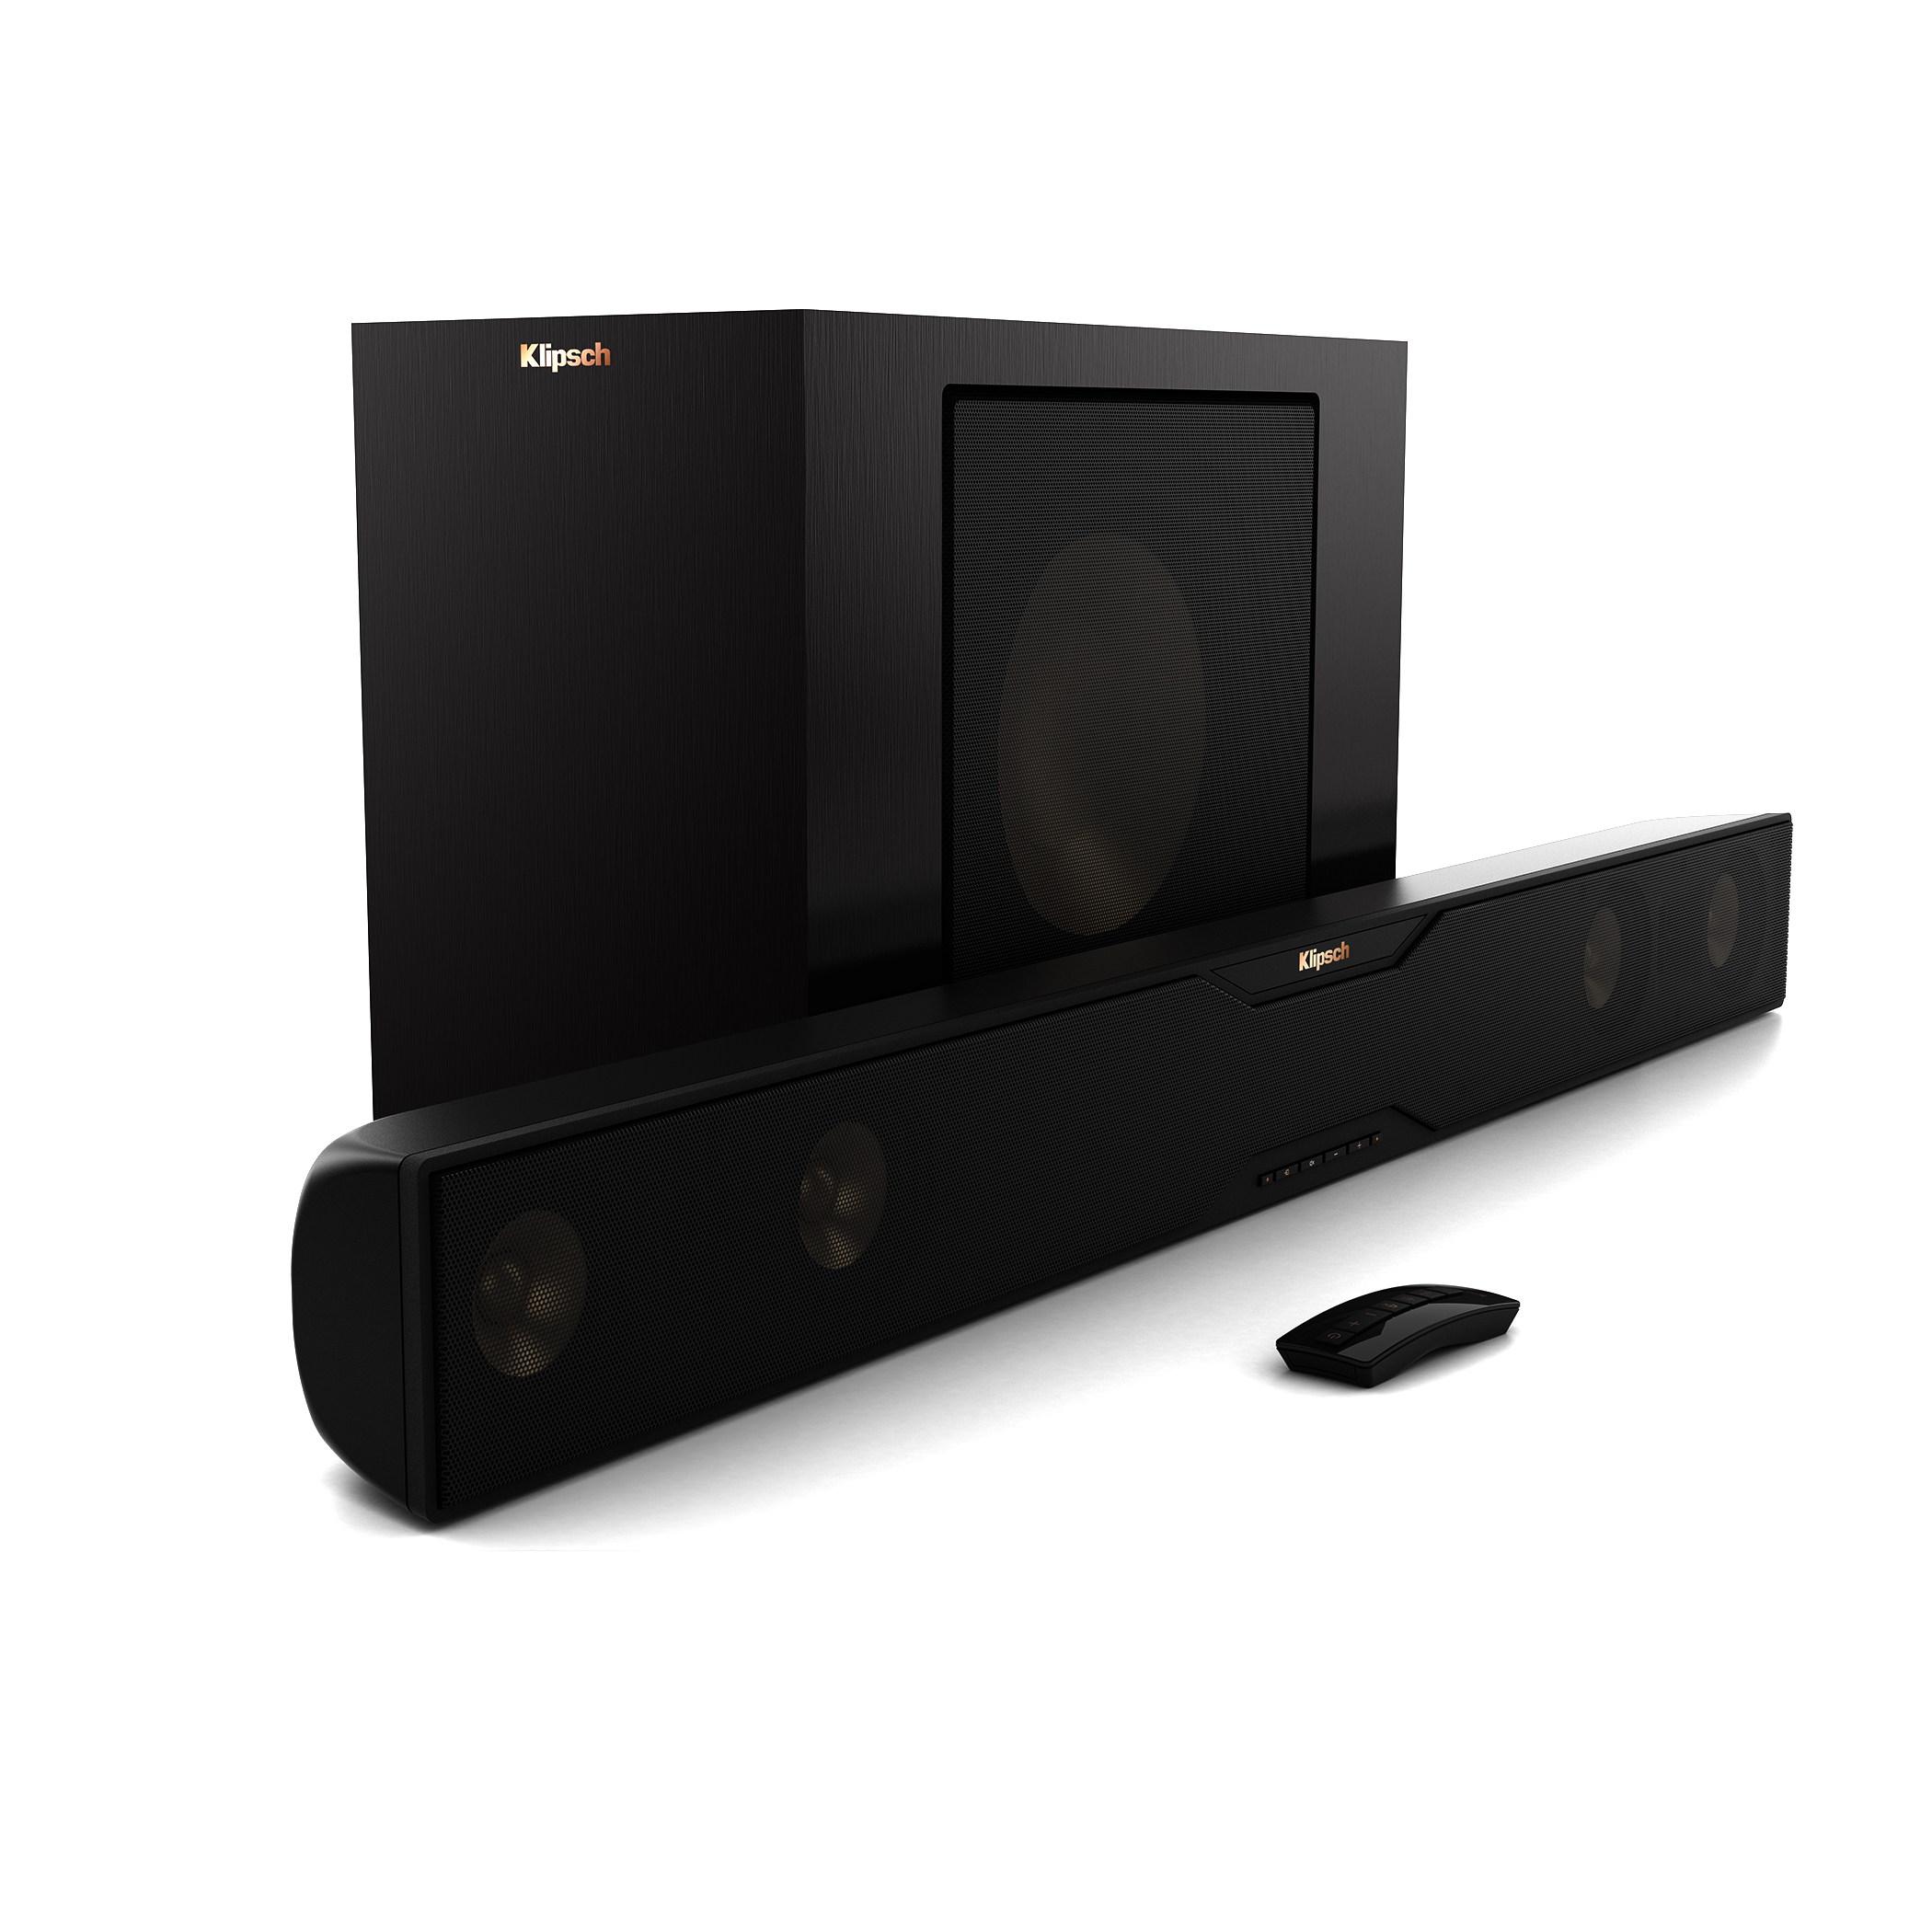 R-20B Soundbar with Wireless Subwoofer | Klipsch